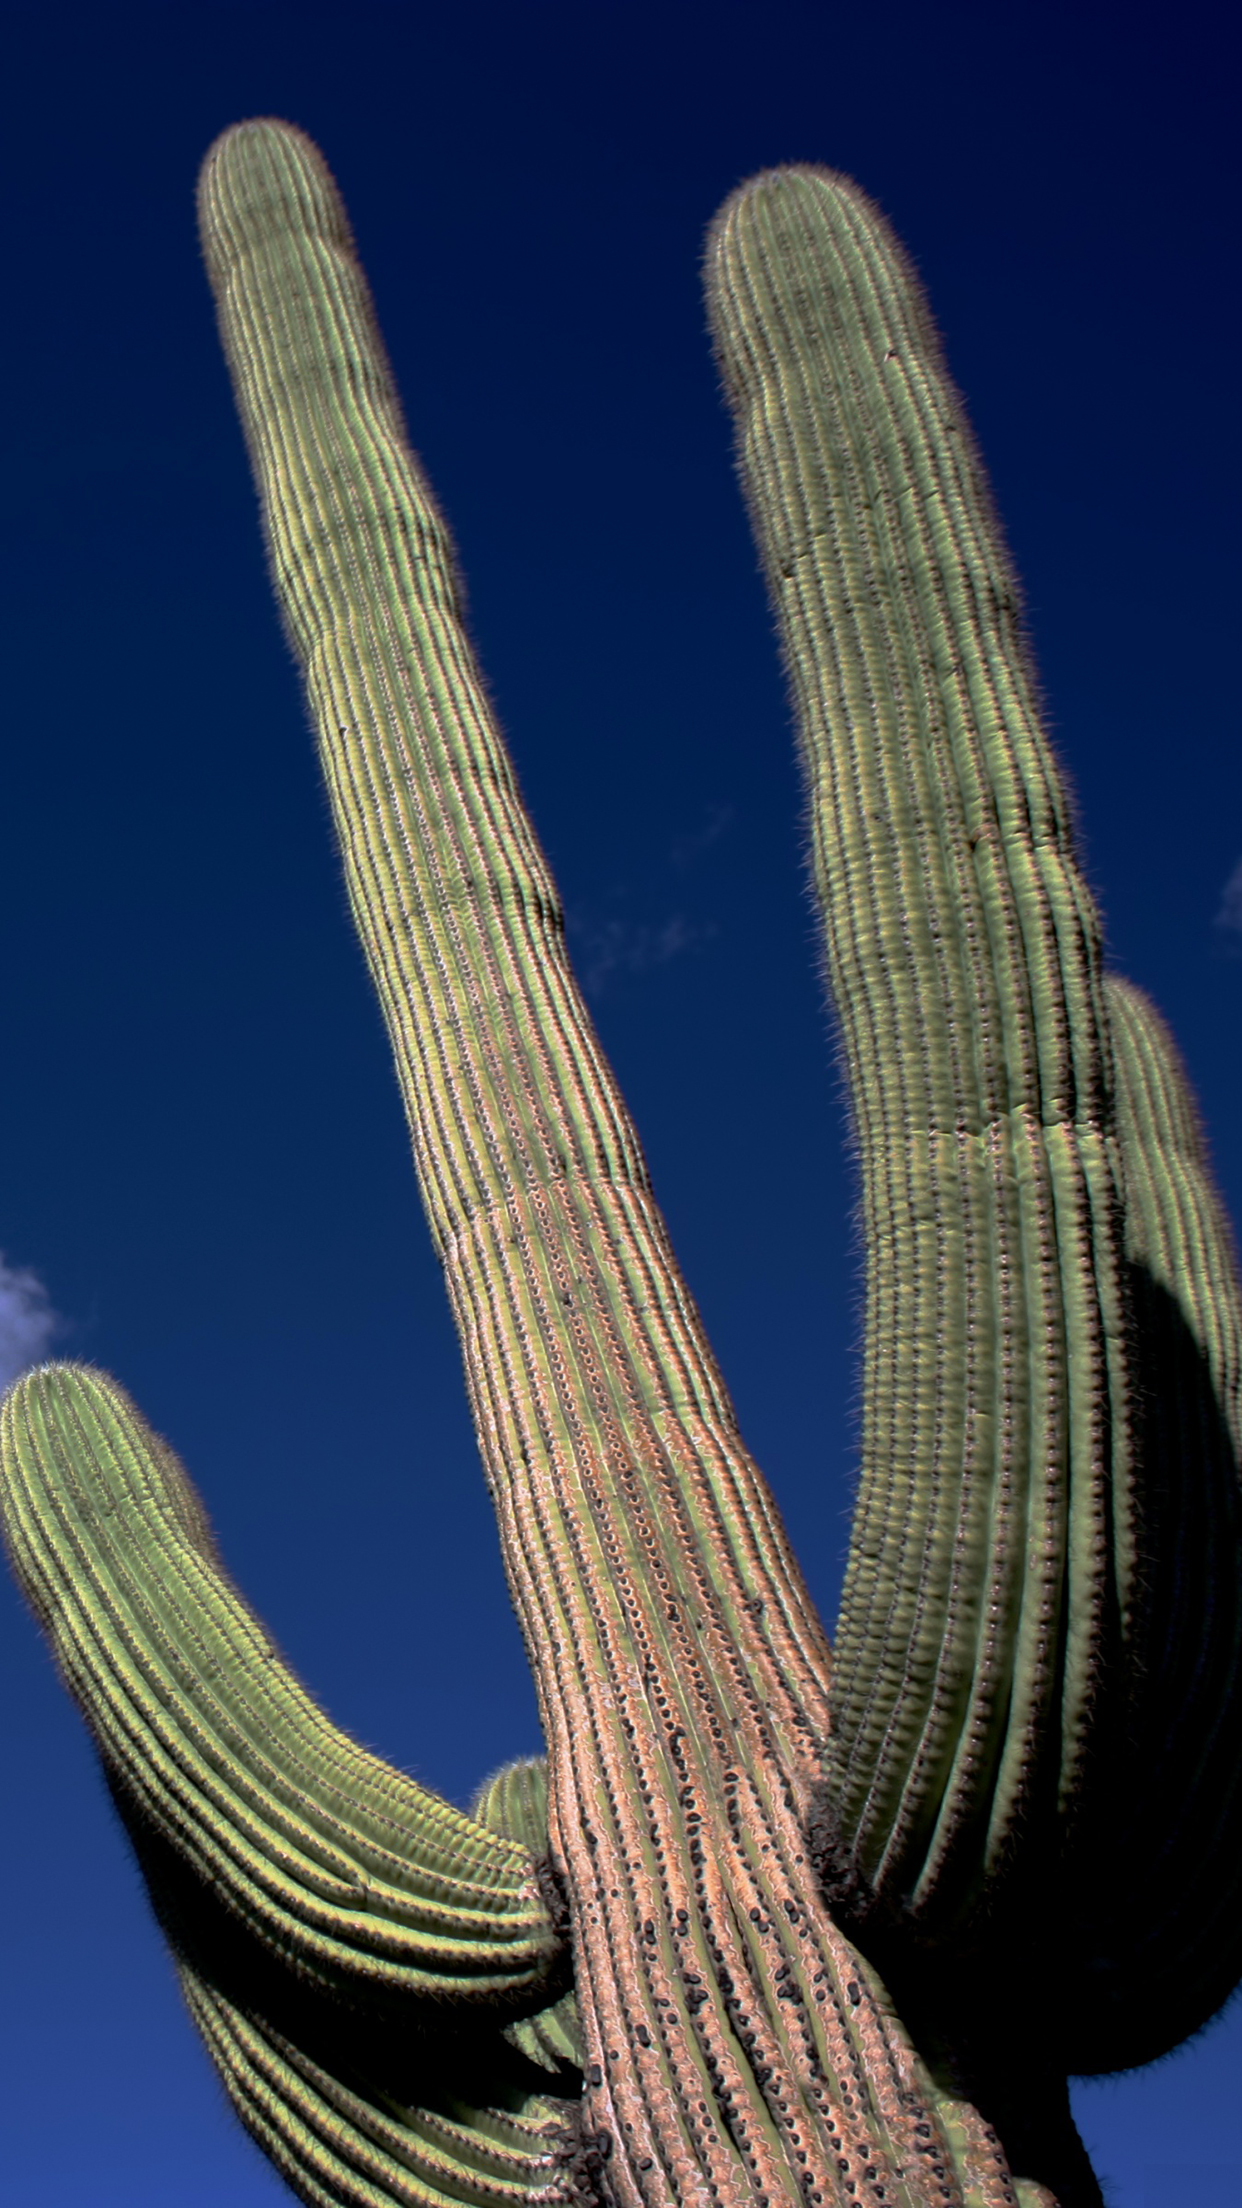 Cactus Saguaro Wallpaper For Iphone X 8 7 6 Free Download On